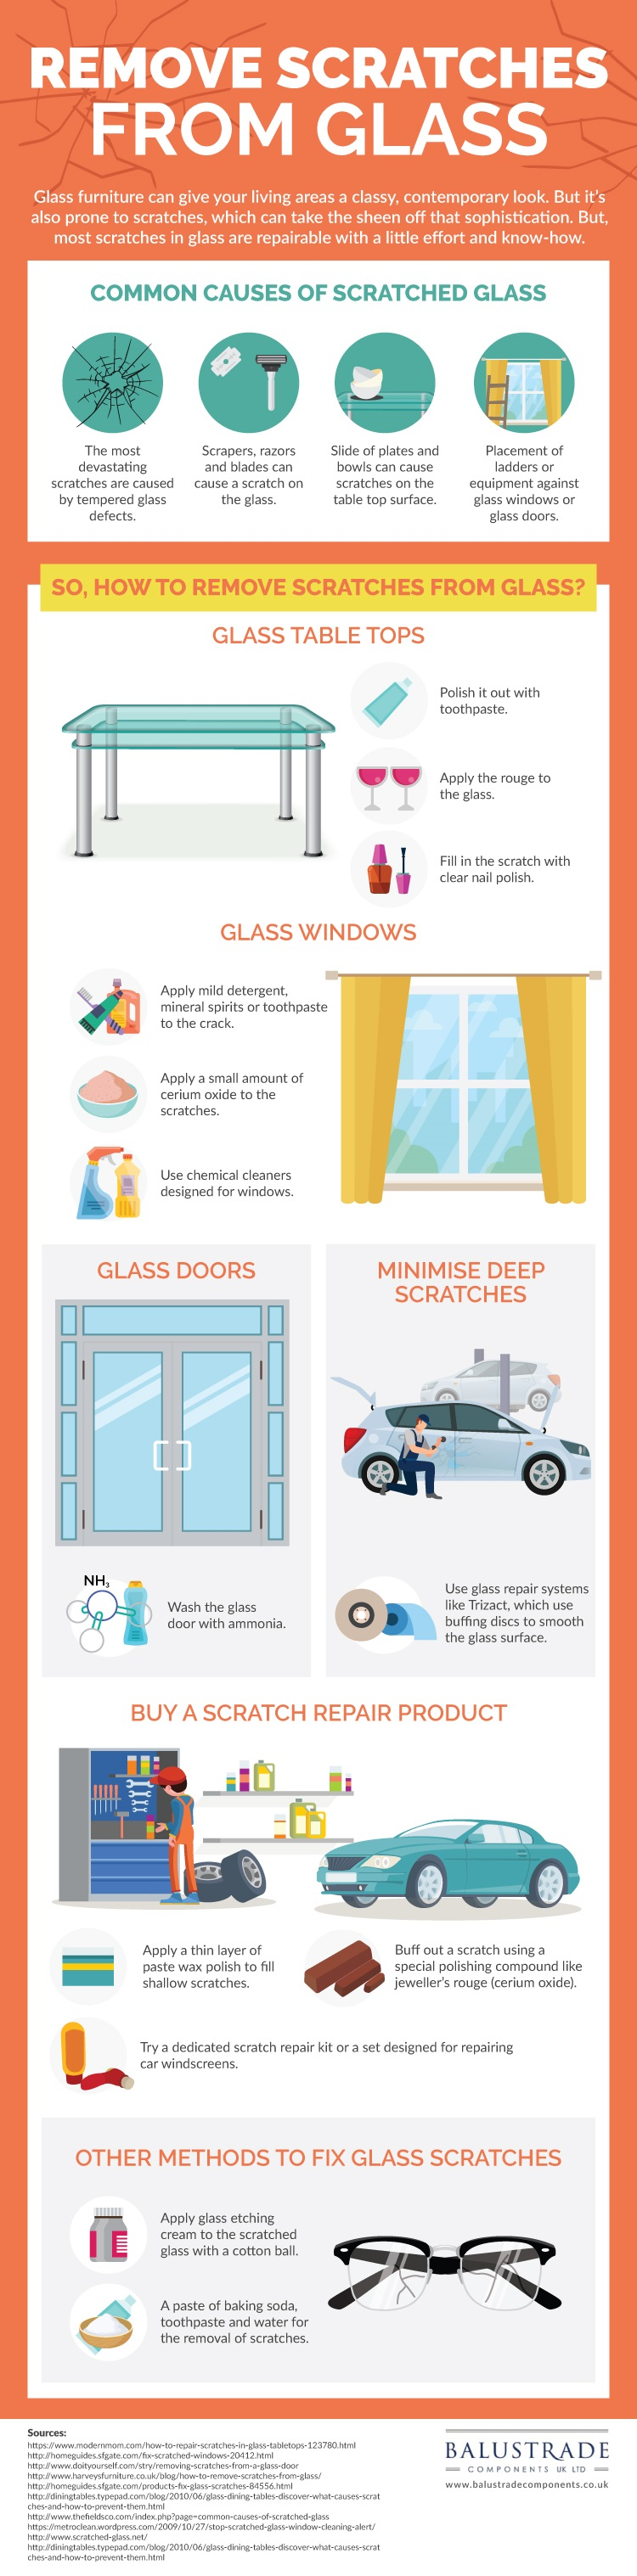 Find out how to remove scratches from glass home accessories